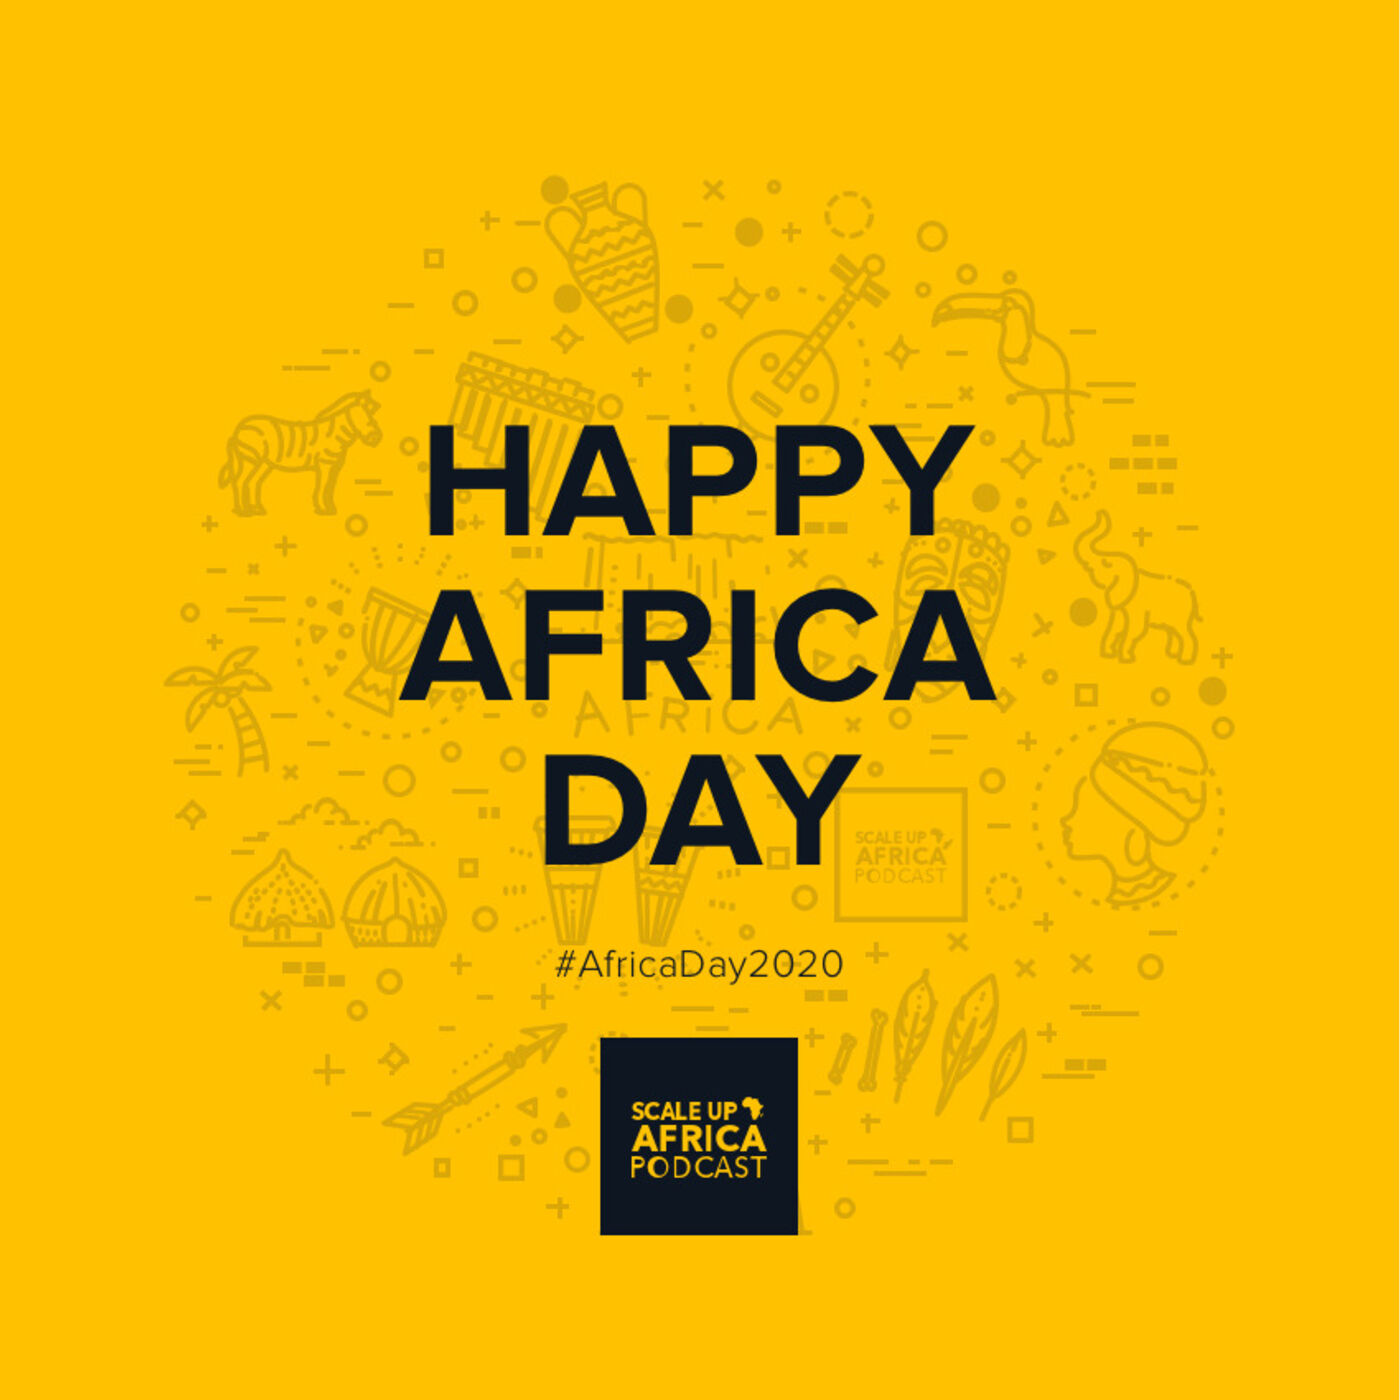 Scale Up Africa celebrates Africa Day 2020